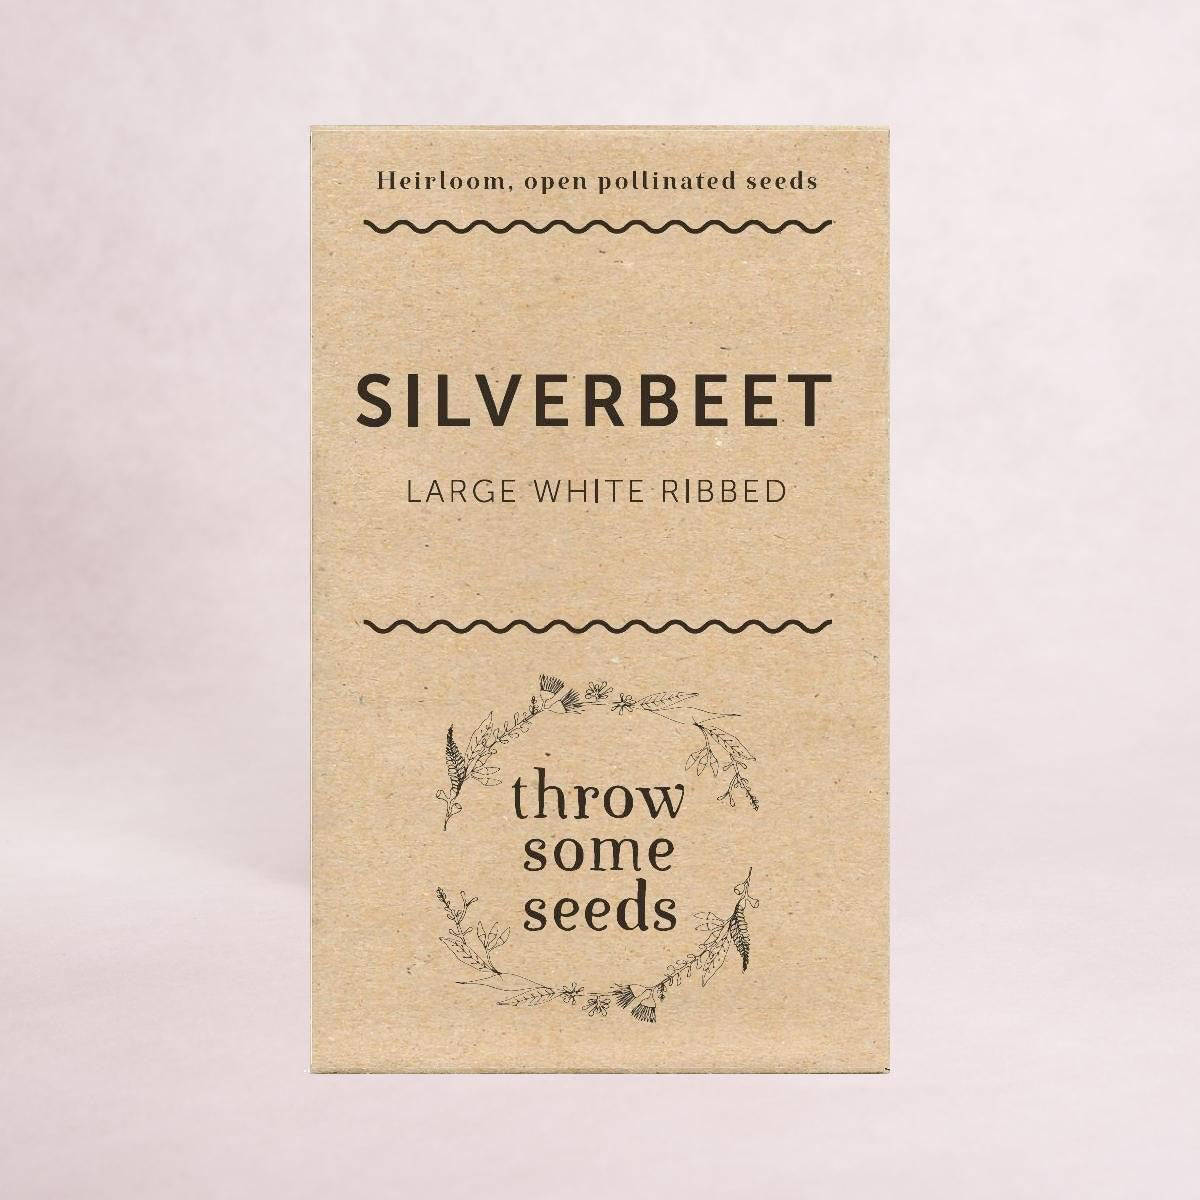 Silverbeet  (Large White Ribbed) Seeds - Seeds - Throw Some Seeds - Australian gardening gifts and eco products online!